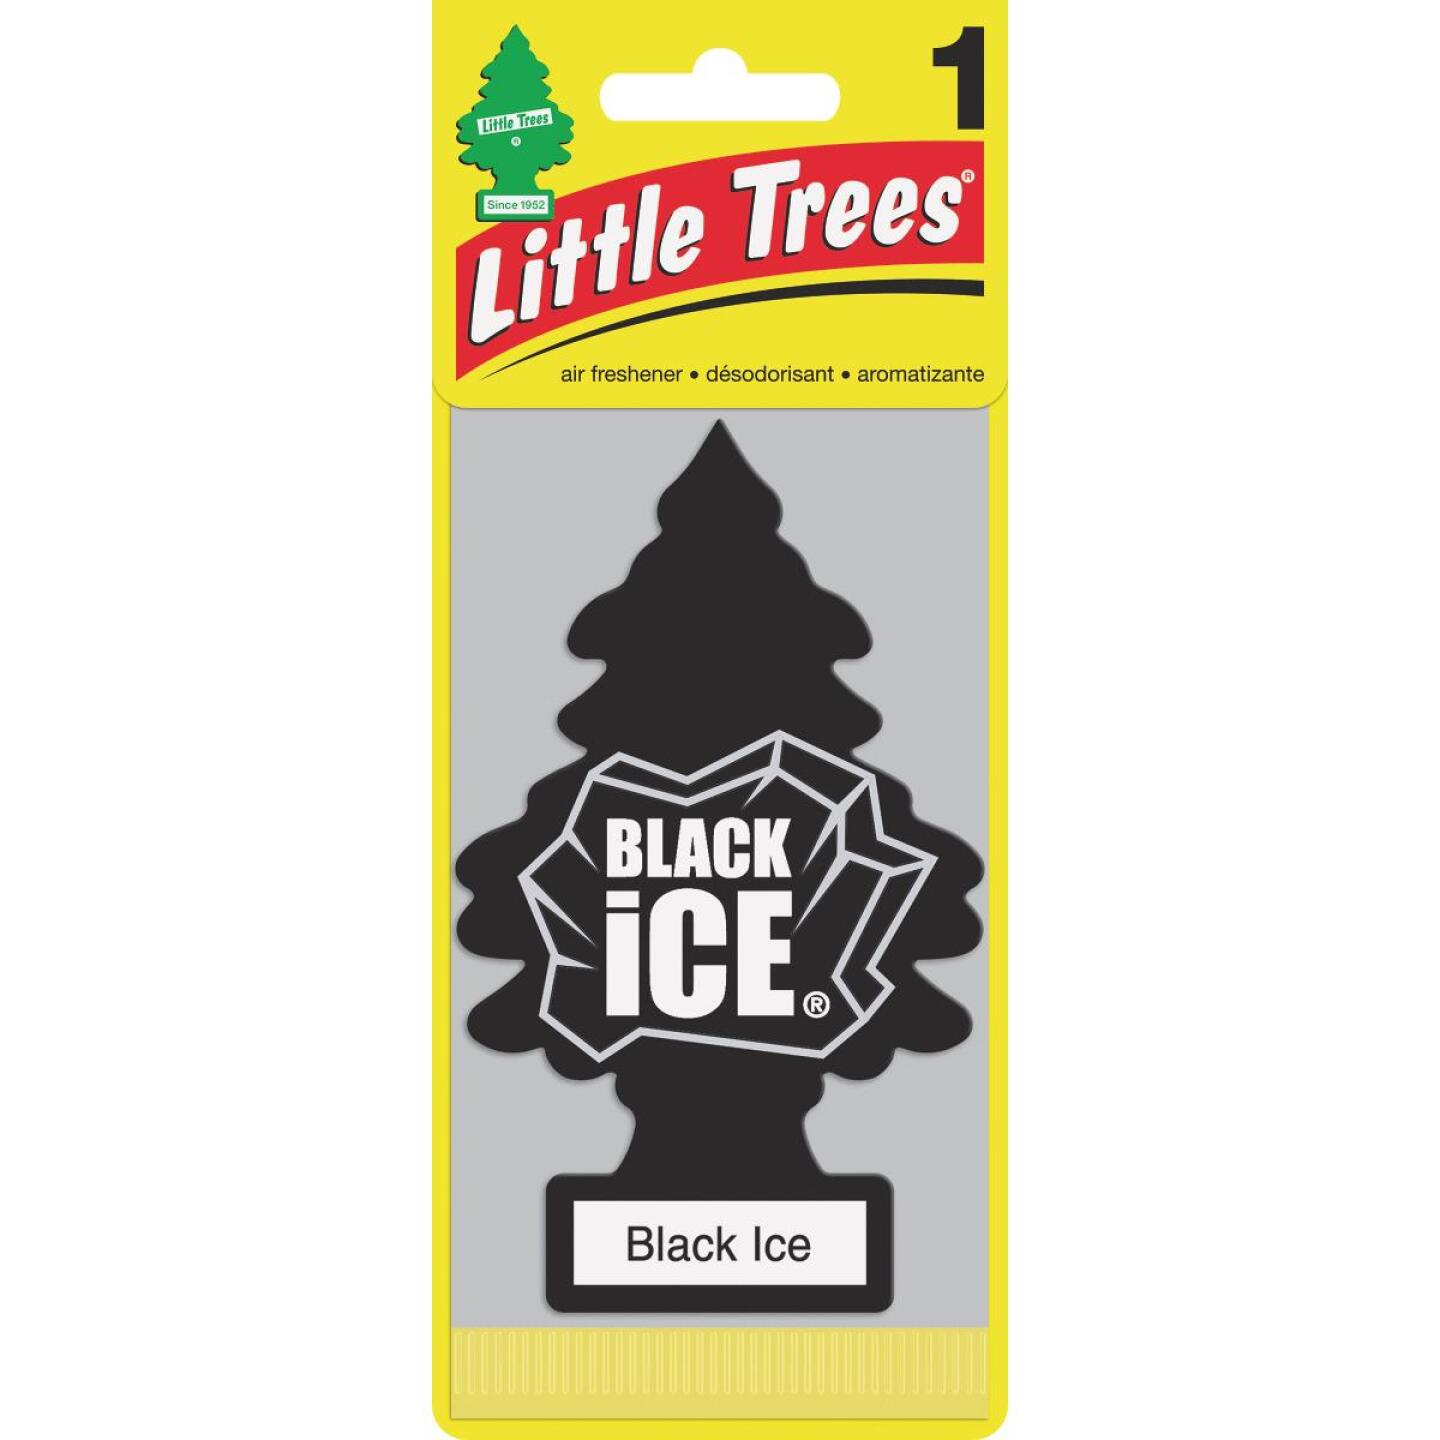 Little Trees Car Air Freshener, Black Ice Image 1